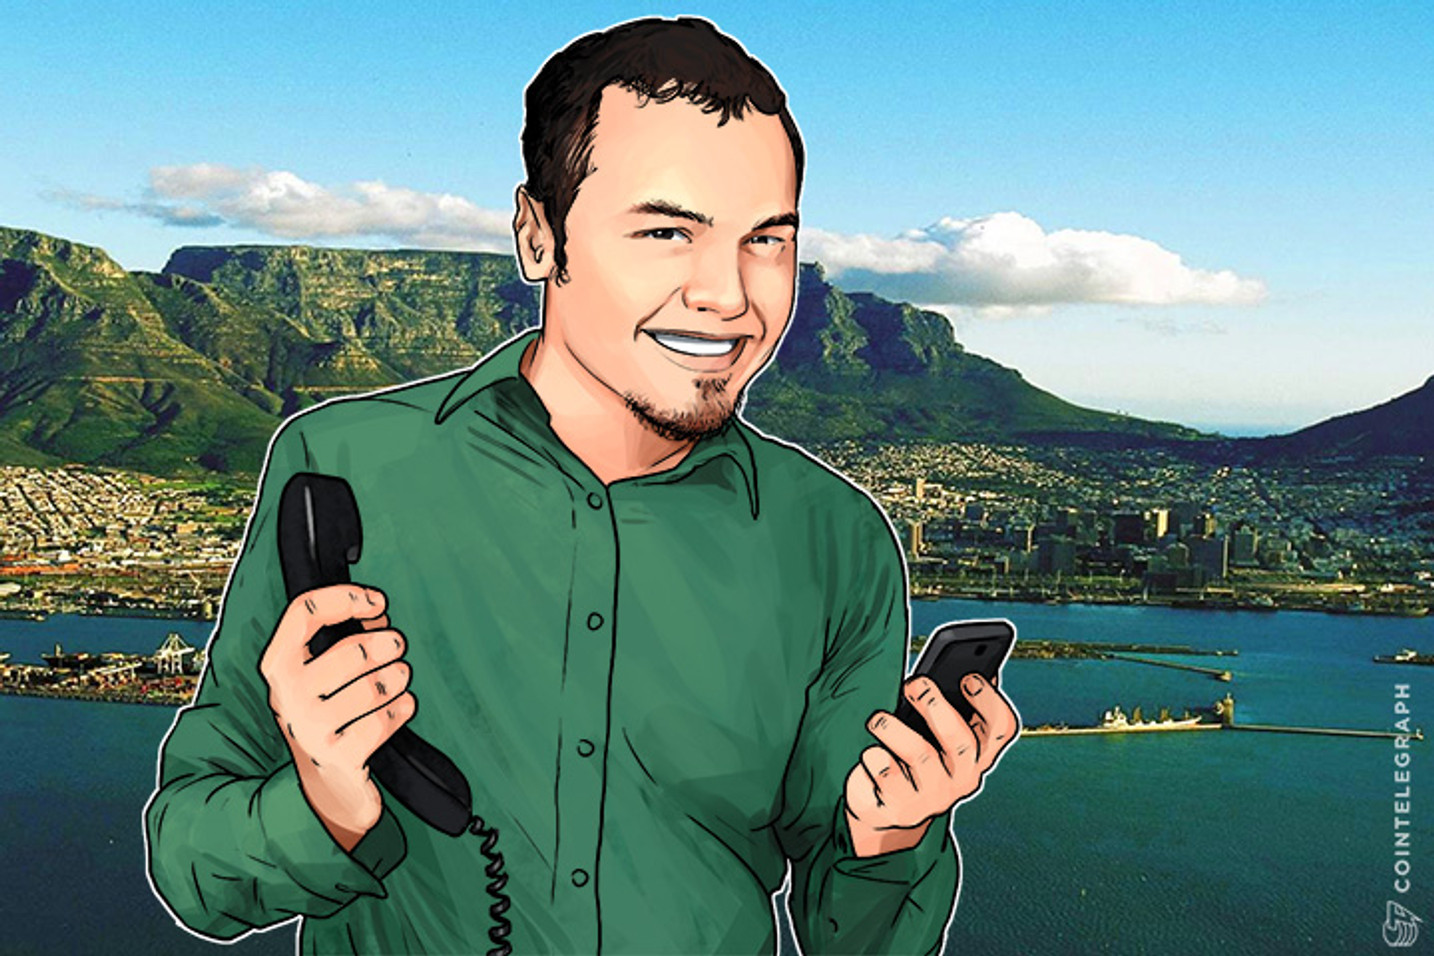 Bitcoin in Africa Could Leapfrog Just Like Cellular Phones Replaced Landline